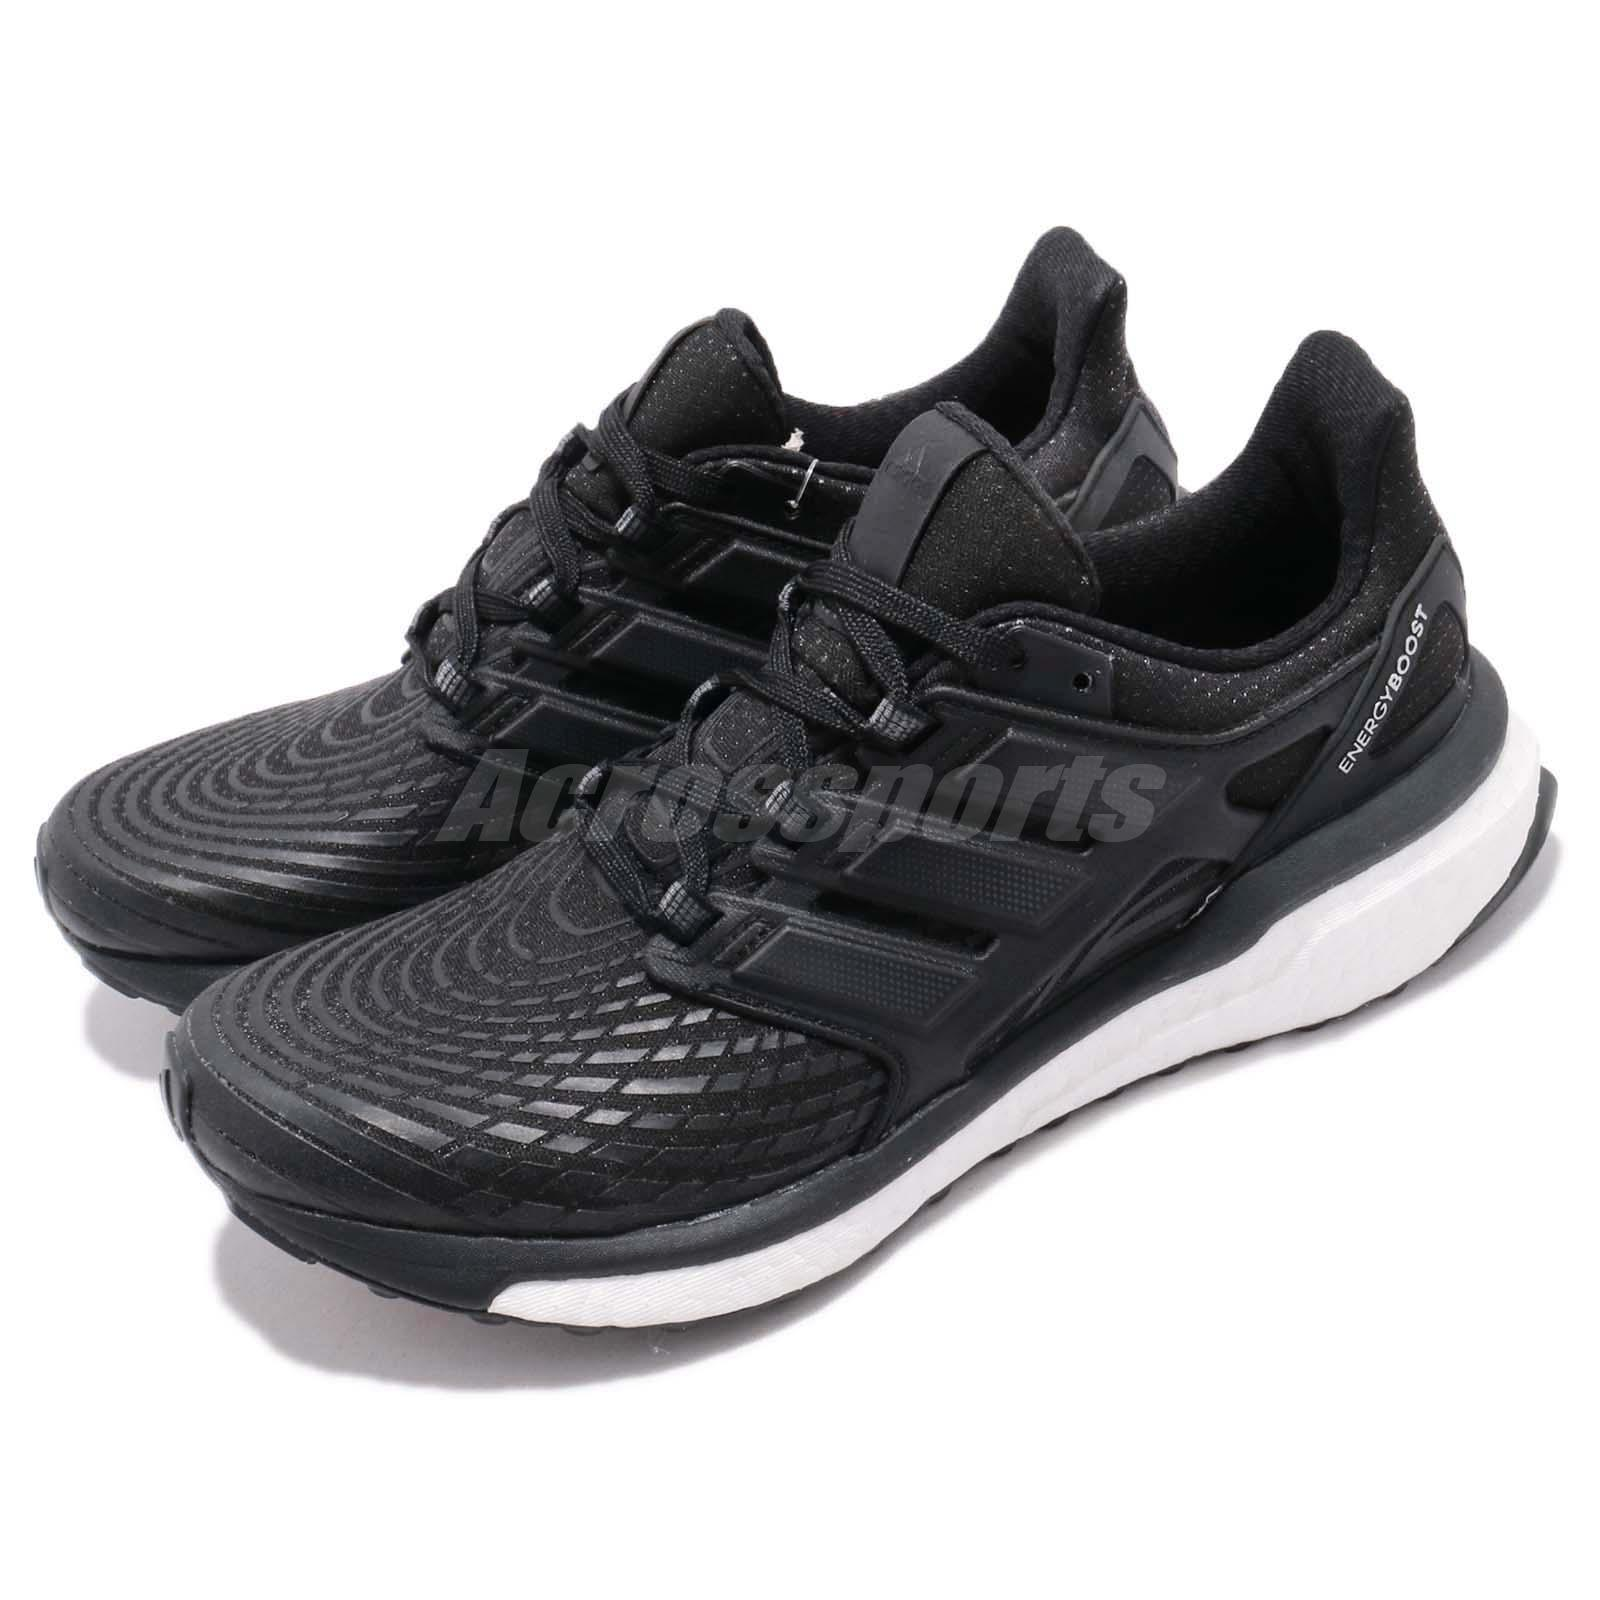 Details about adidas Energy Boost W Continental Black White Women Running  Shoes Sneaker CG3972